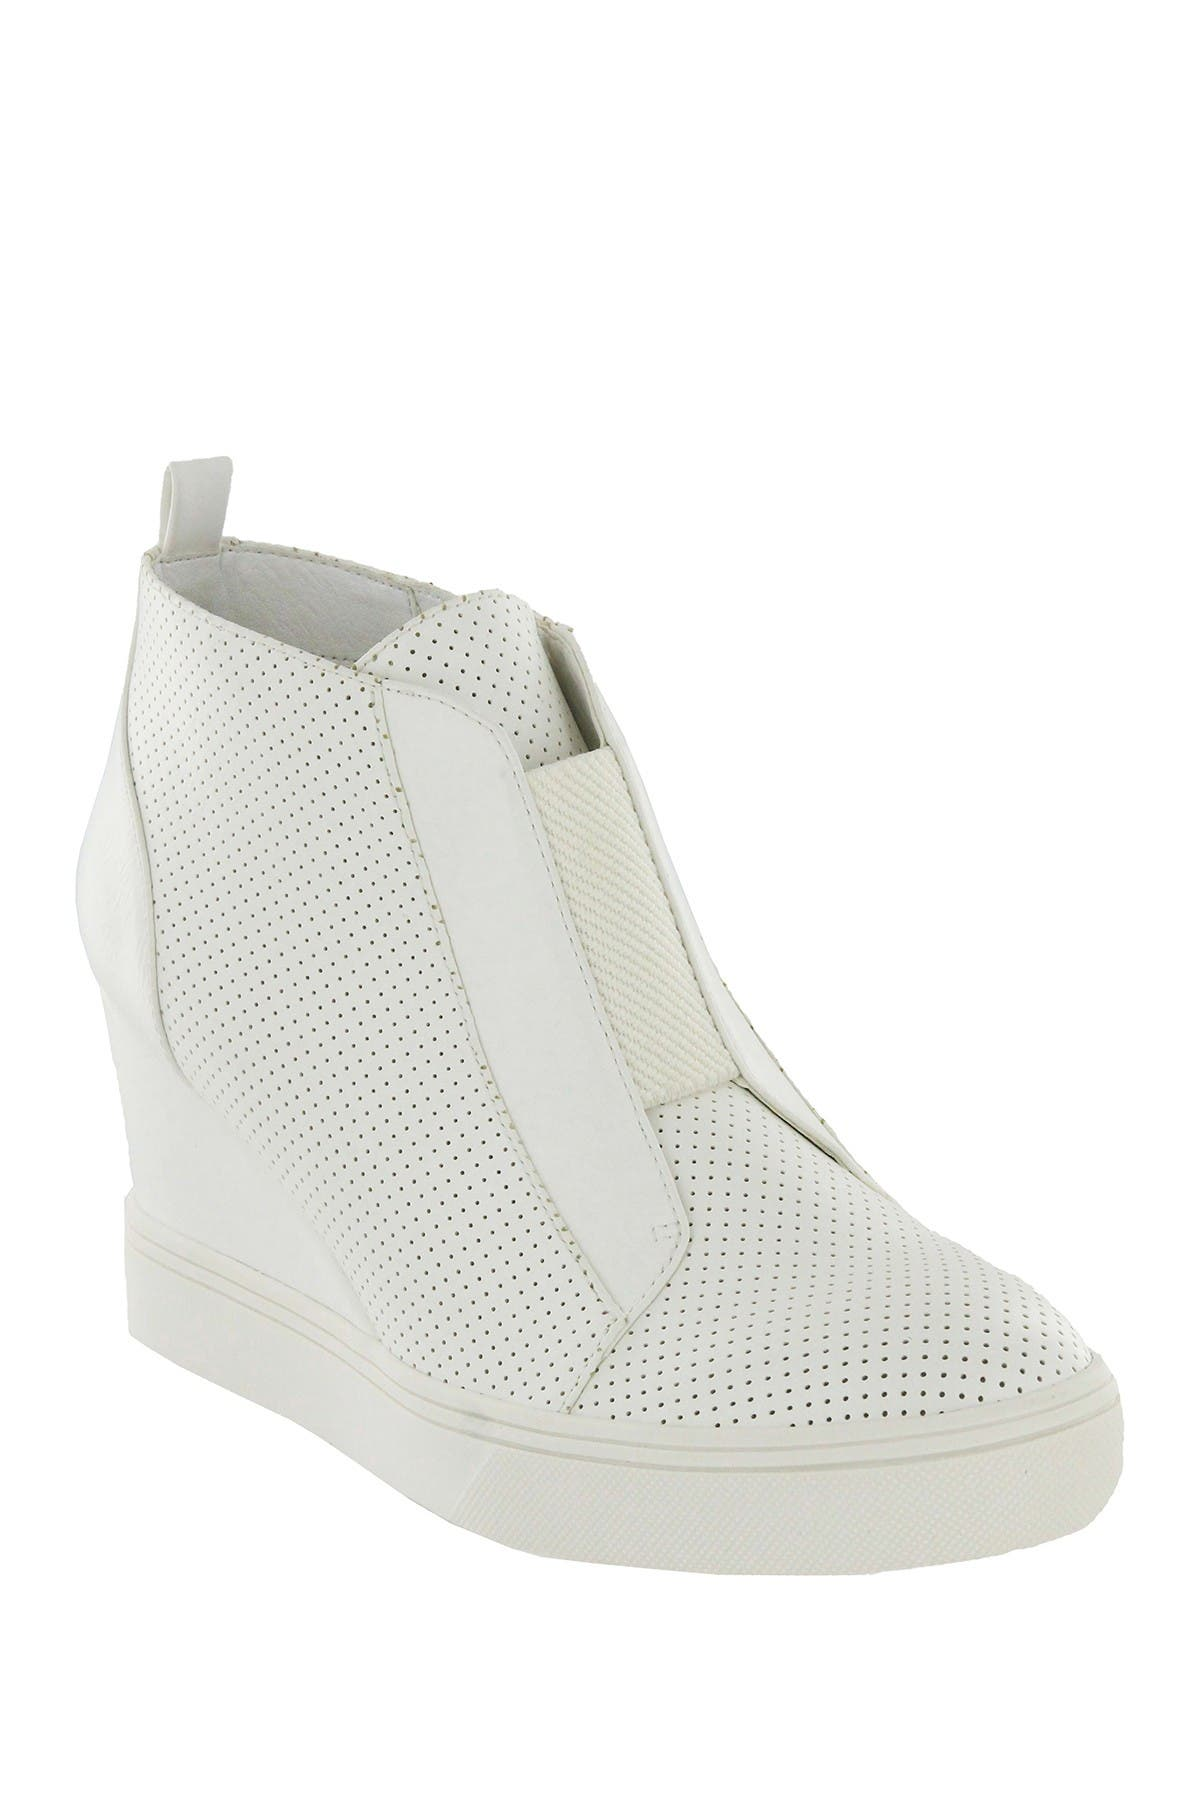 Image of MIA Cristie Wedge Sneaker